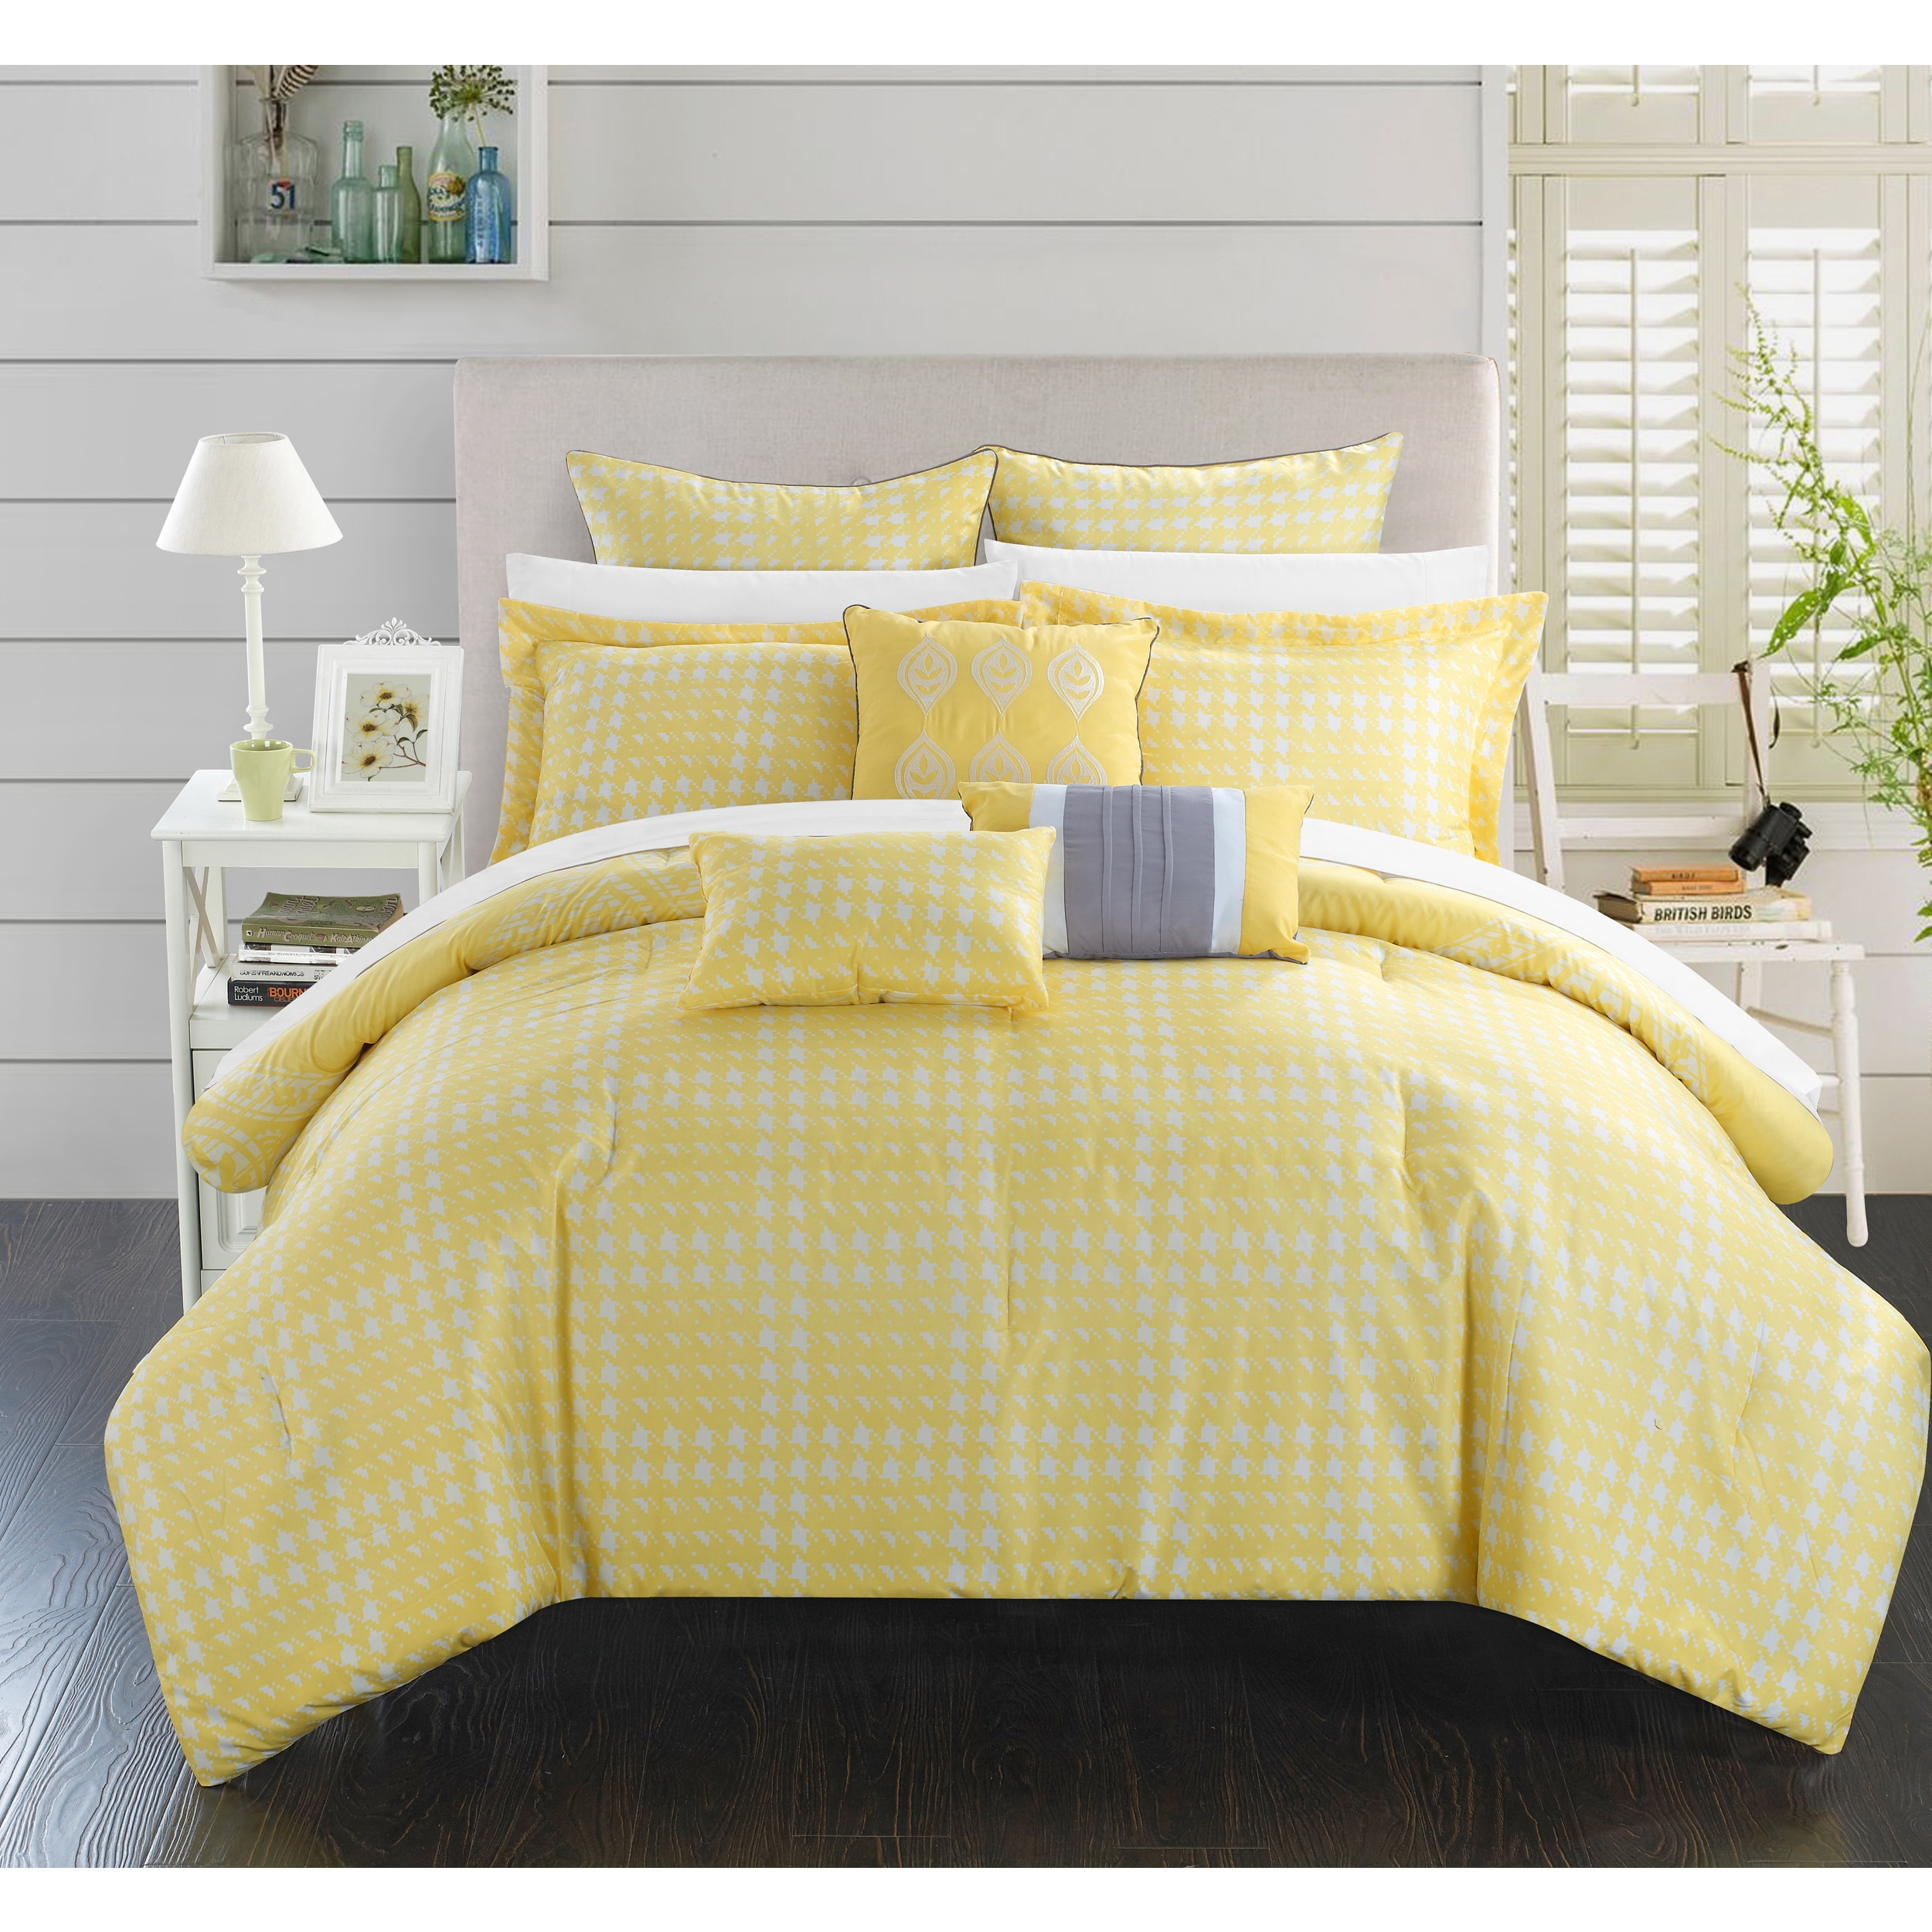 gray piece bedding lace queen and comforter sets p antique chevron full set yellow bed